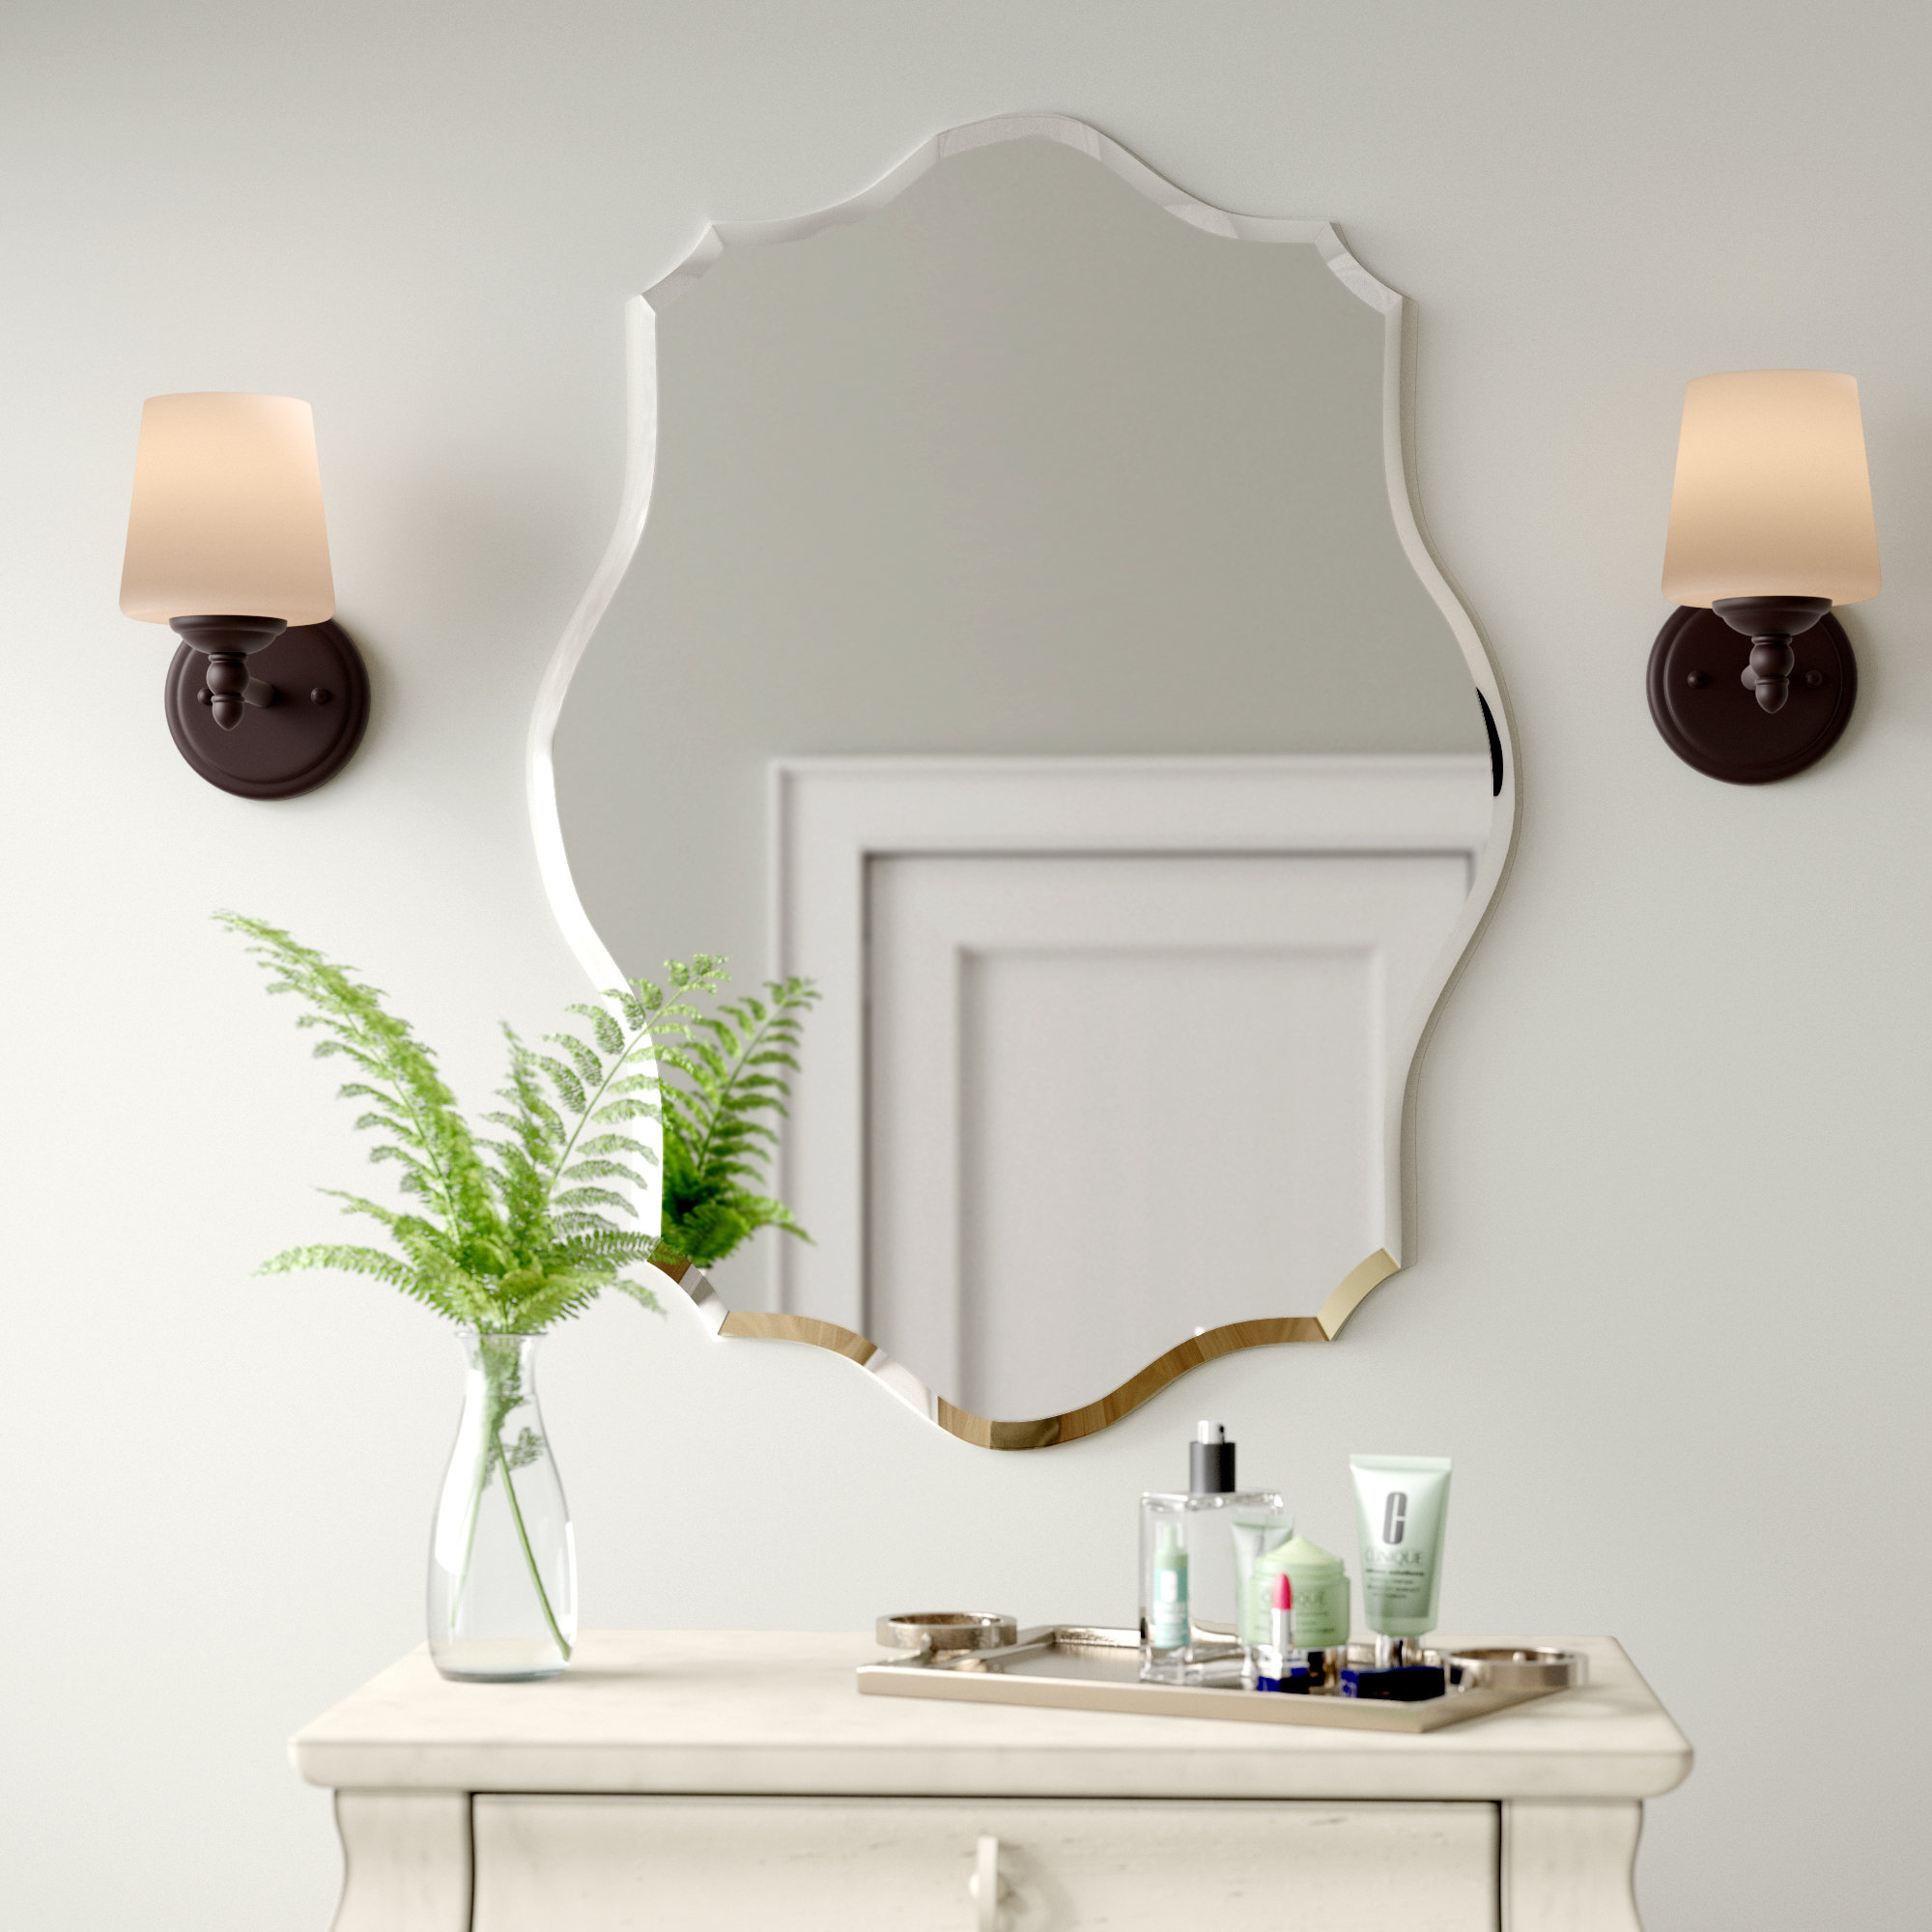 Birch Lane™ Heritage Guidinha Modern & Contemporary Accent Mirror Inside Guidinha Modern & Contemporary Accent Mirrors (View 2 of 30)